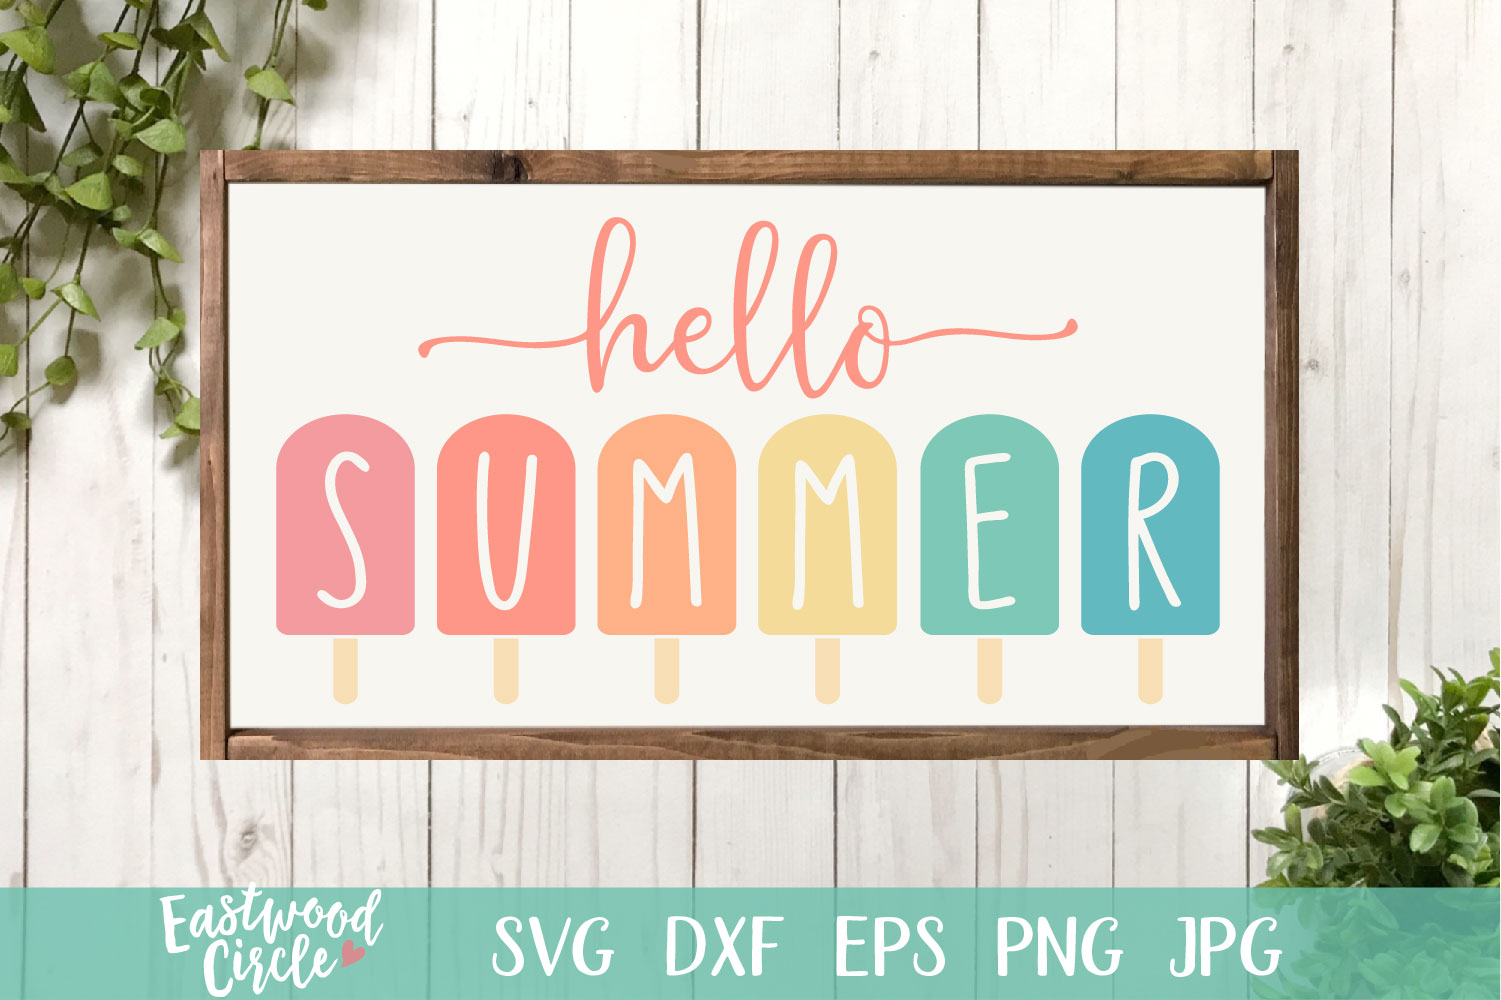 Hello Summer with Popsicles- A Summer SVG File for Signs example image 1